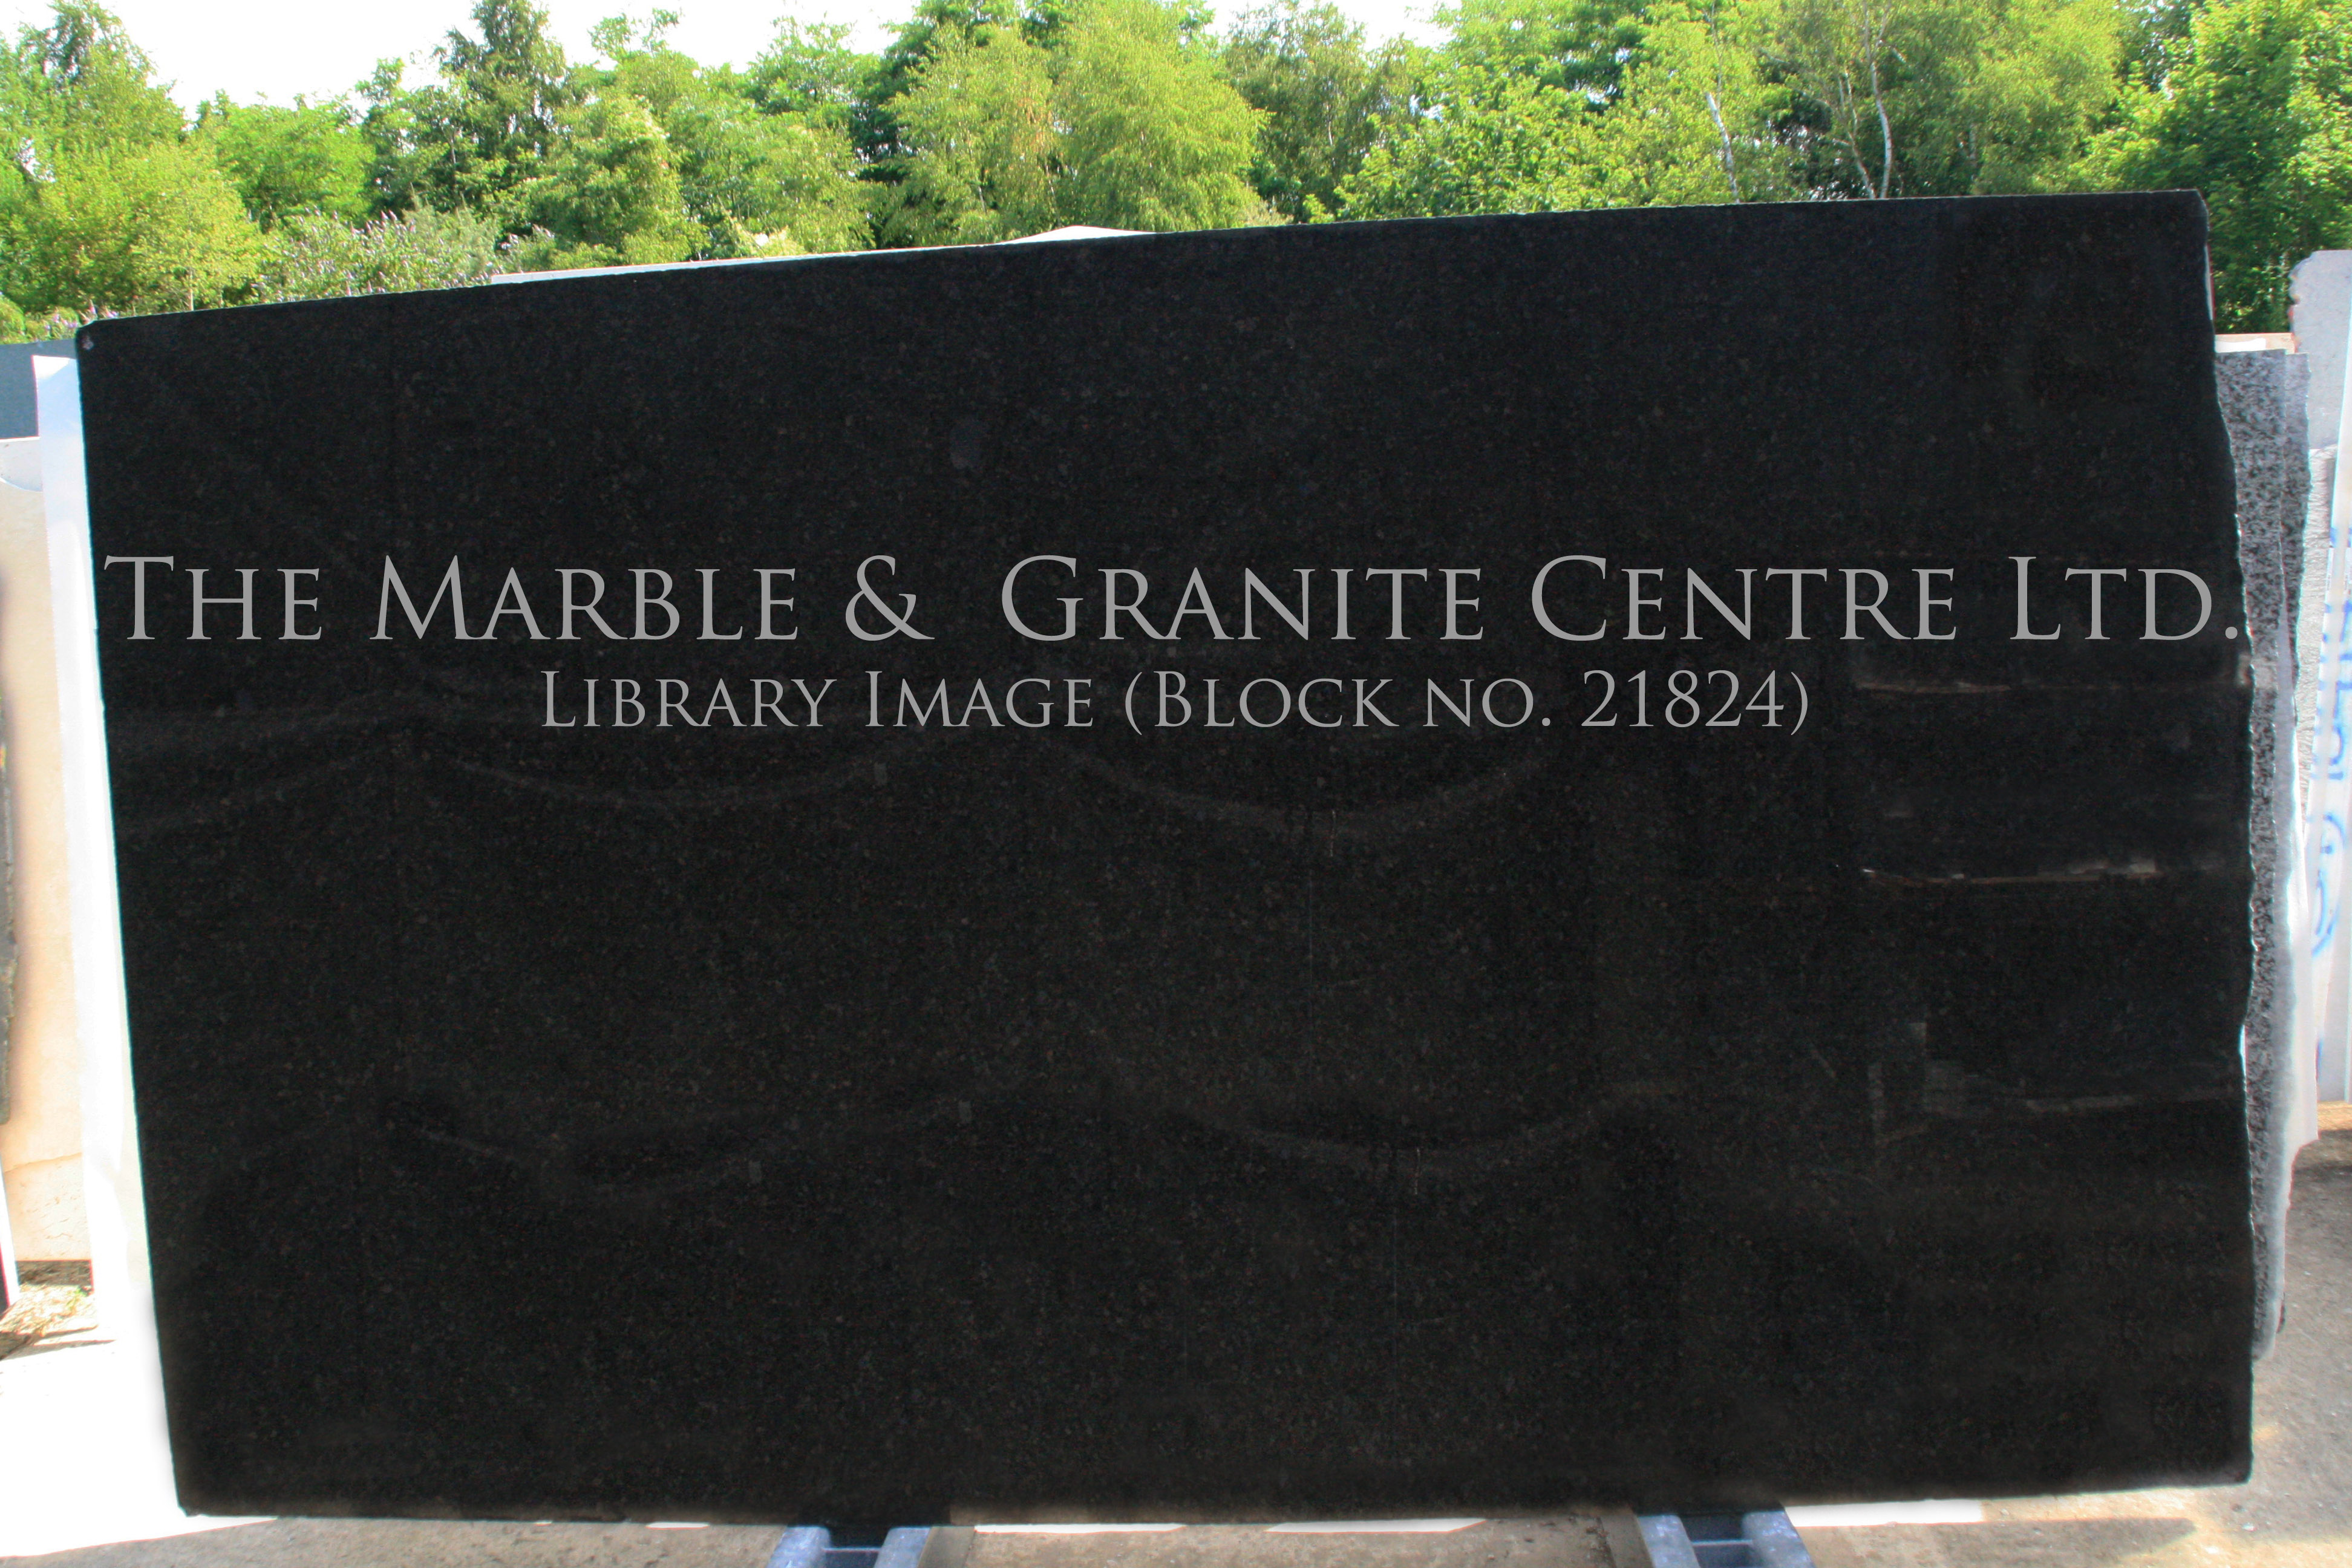 Granite Antique Black Polished 30 mm [23841]